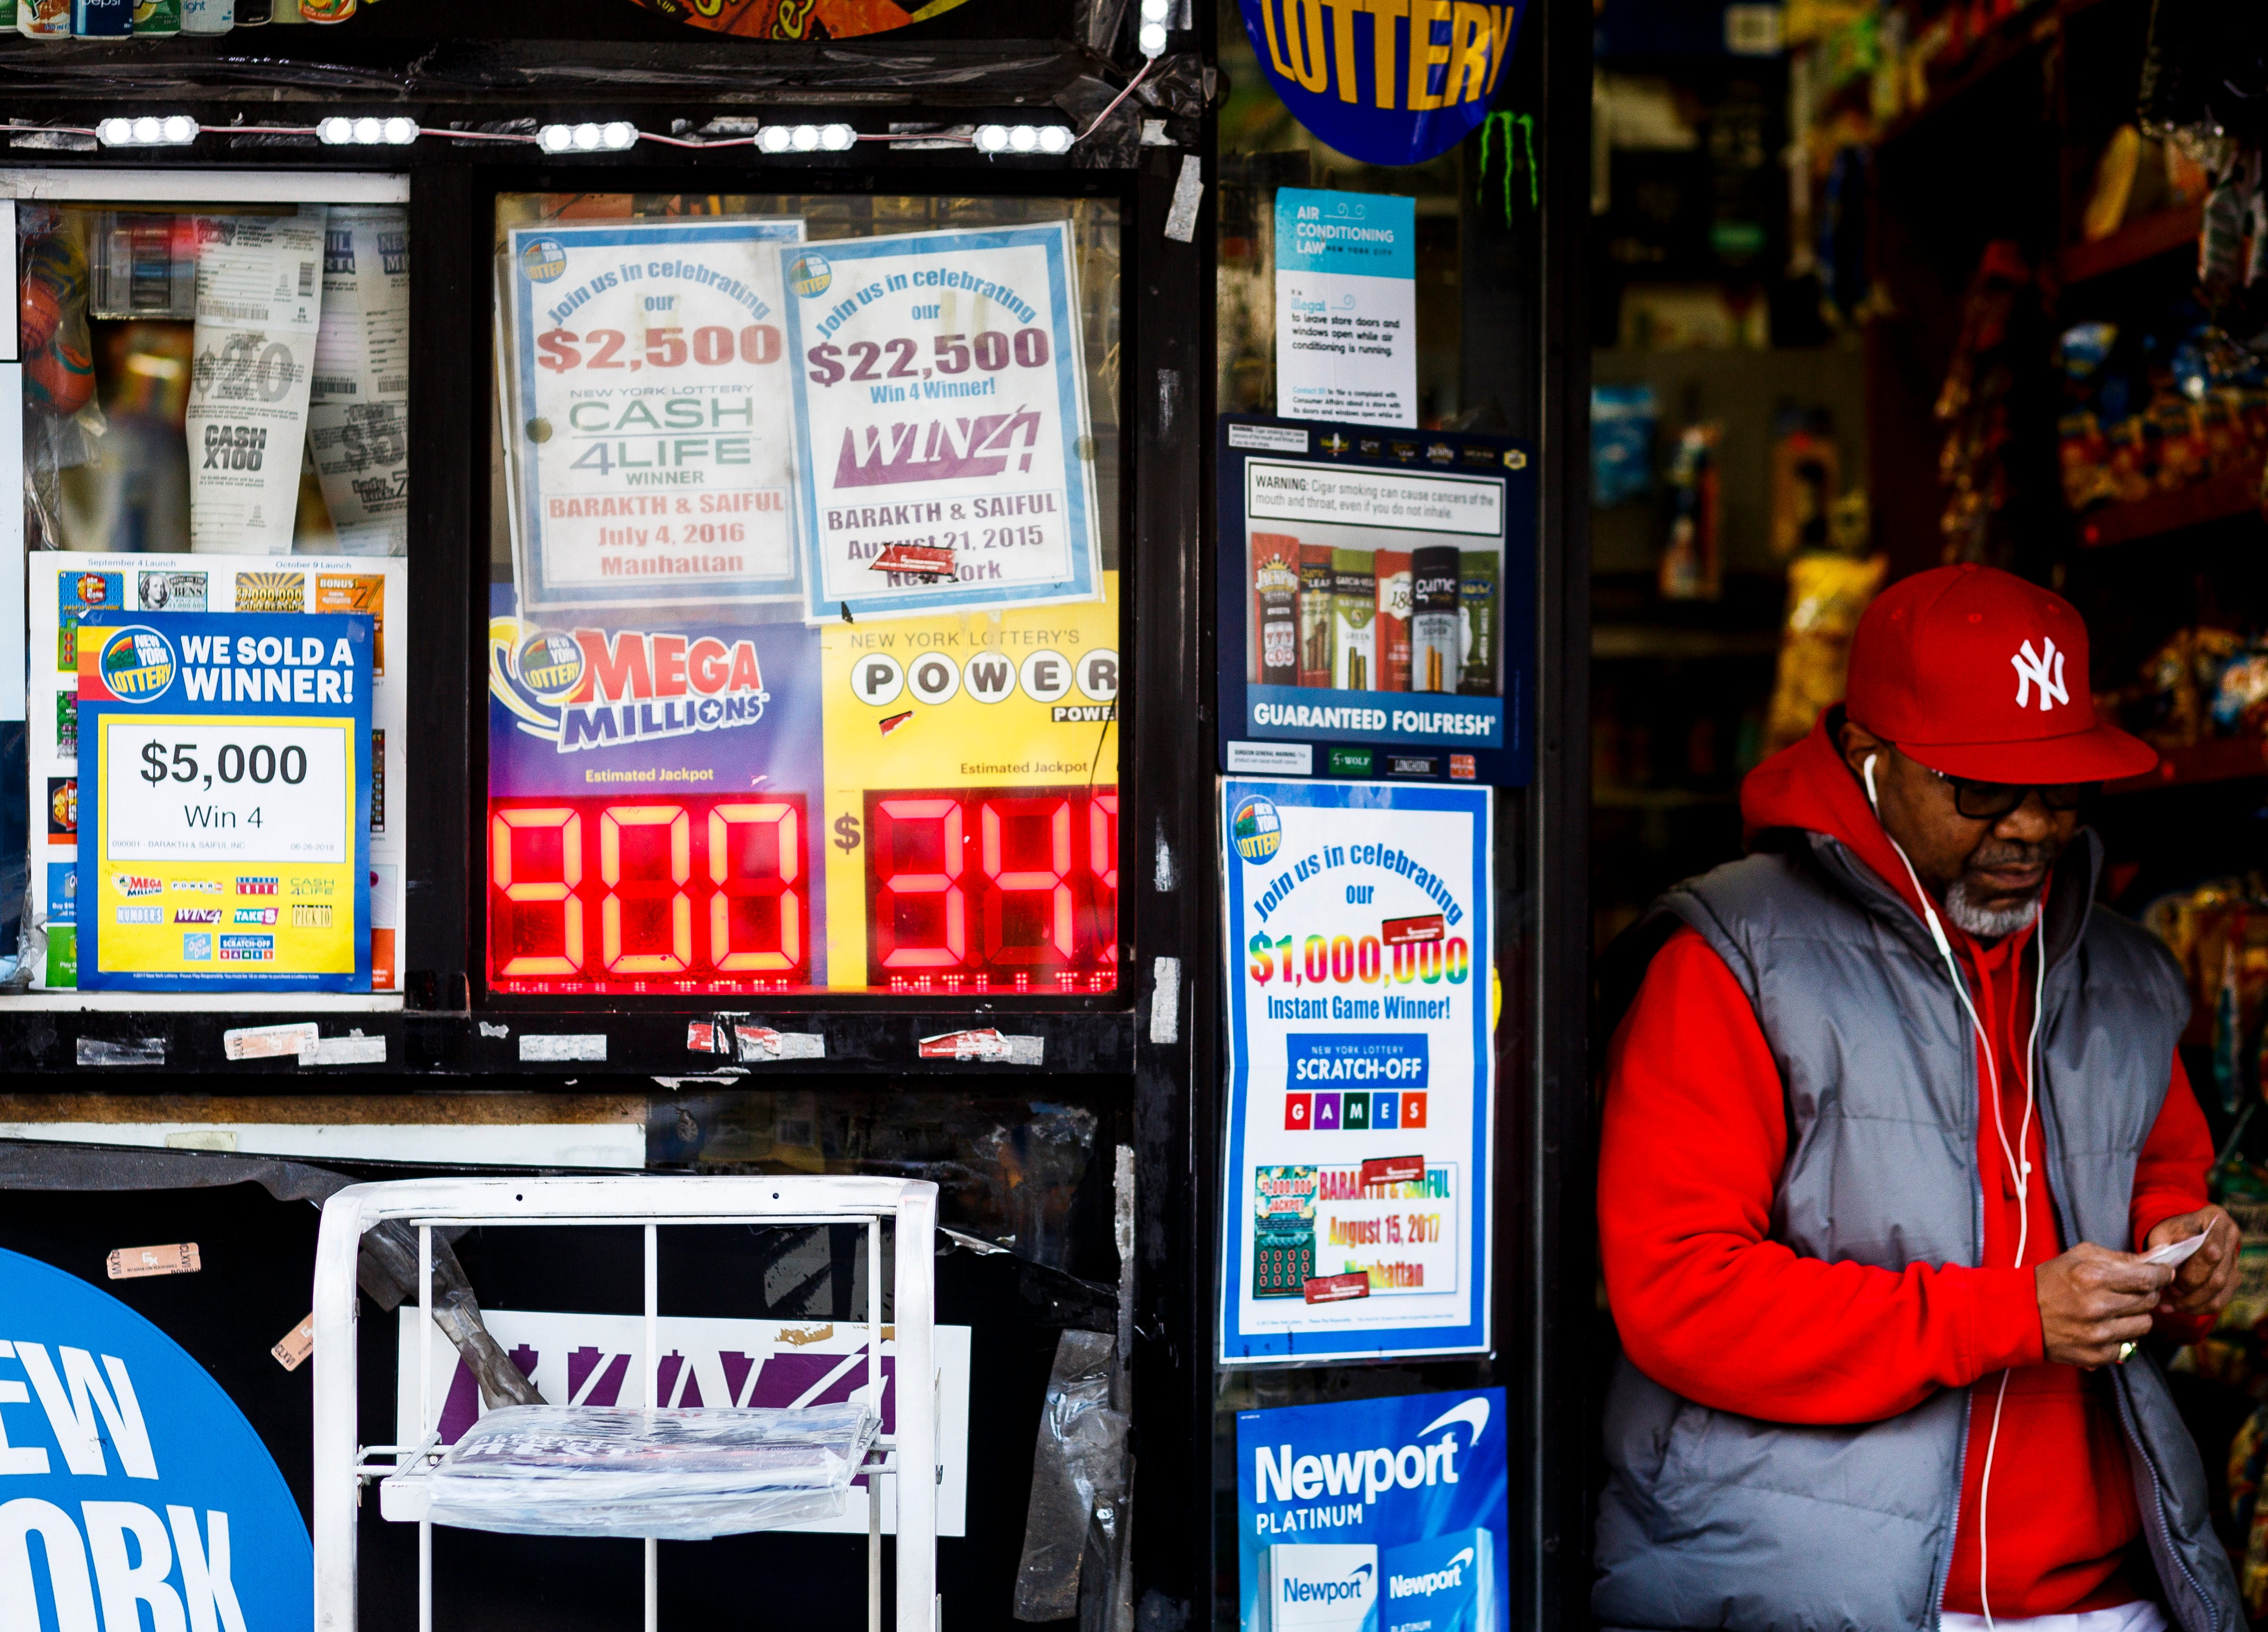 No state tax on lottery prizes for mega